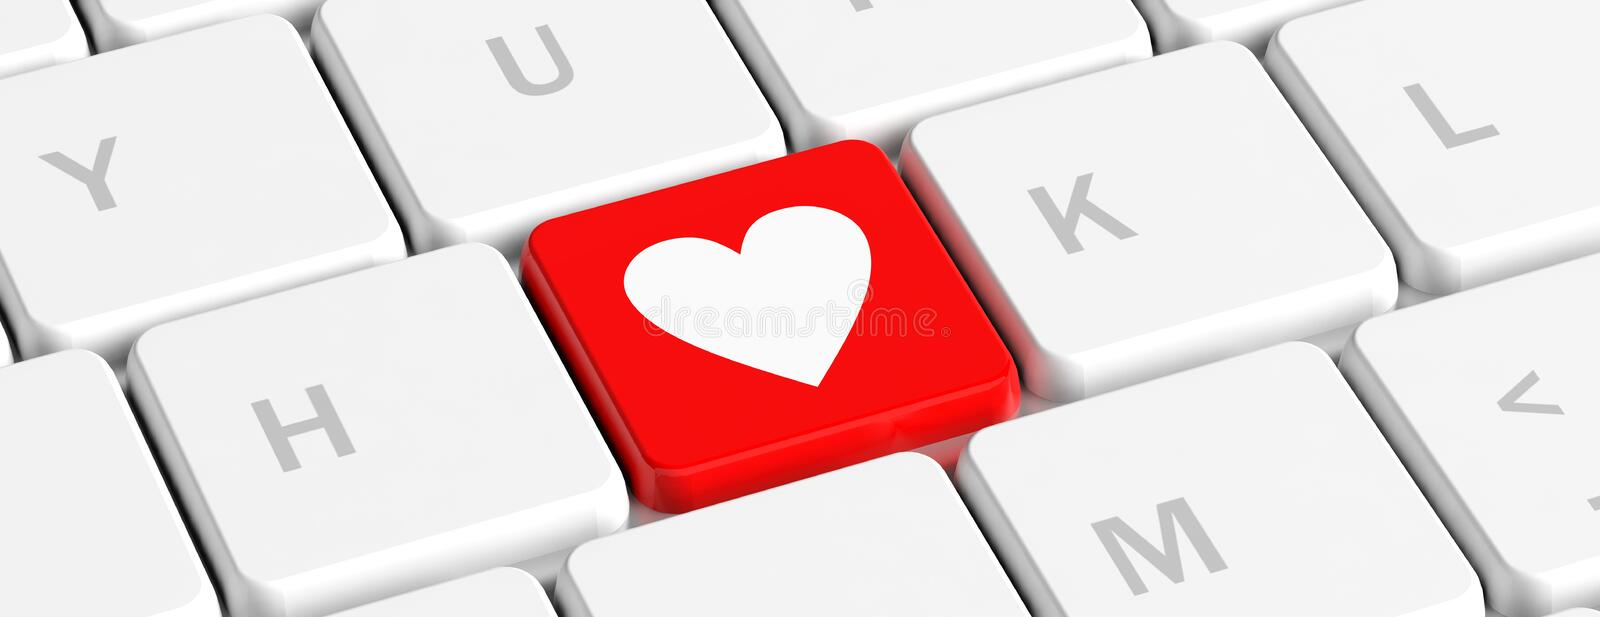 Love, health. Red key button with heart sign on a computer keyboard, banner. 3d illustration vector illustration